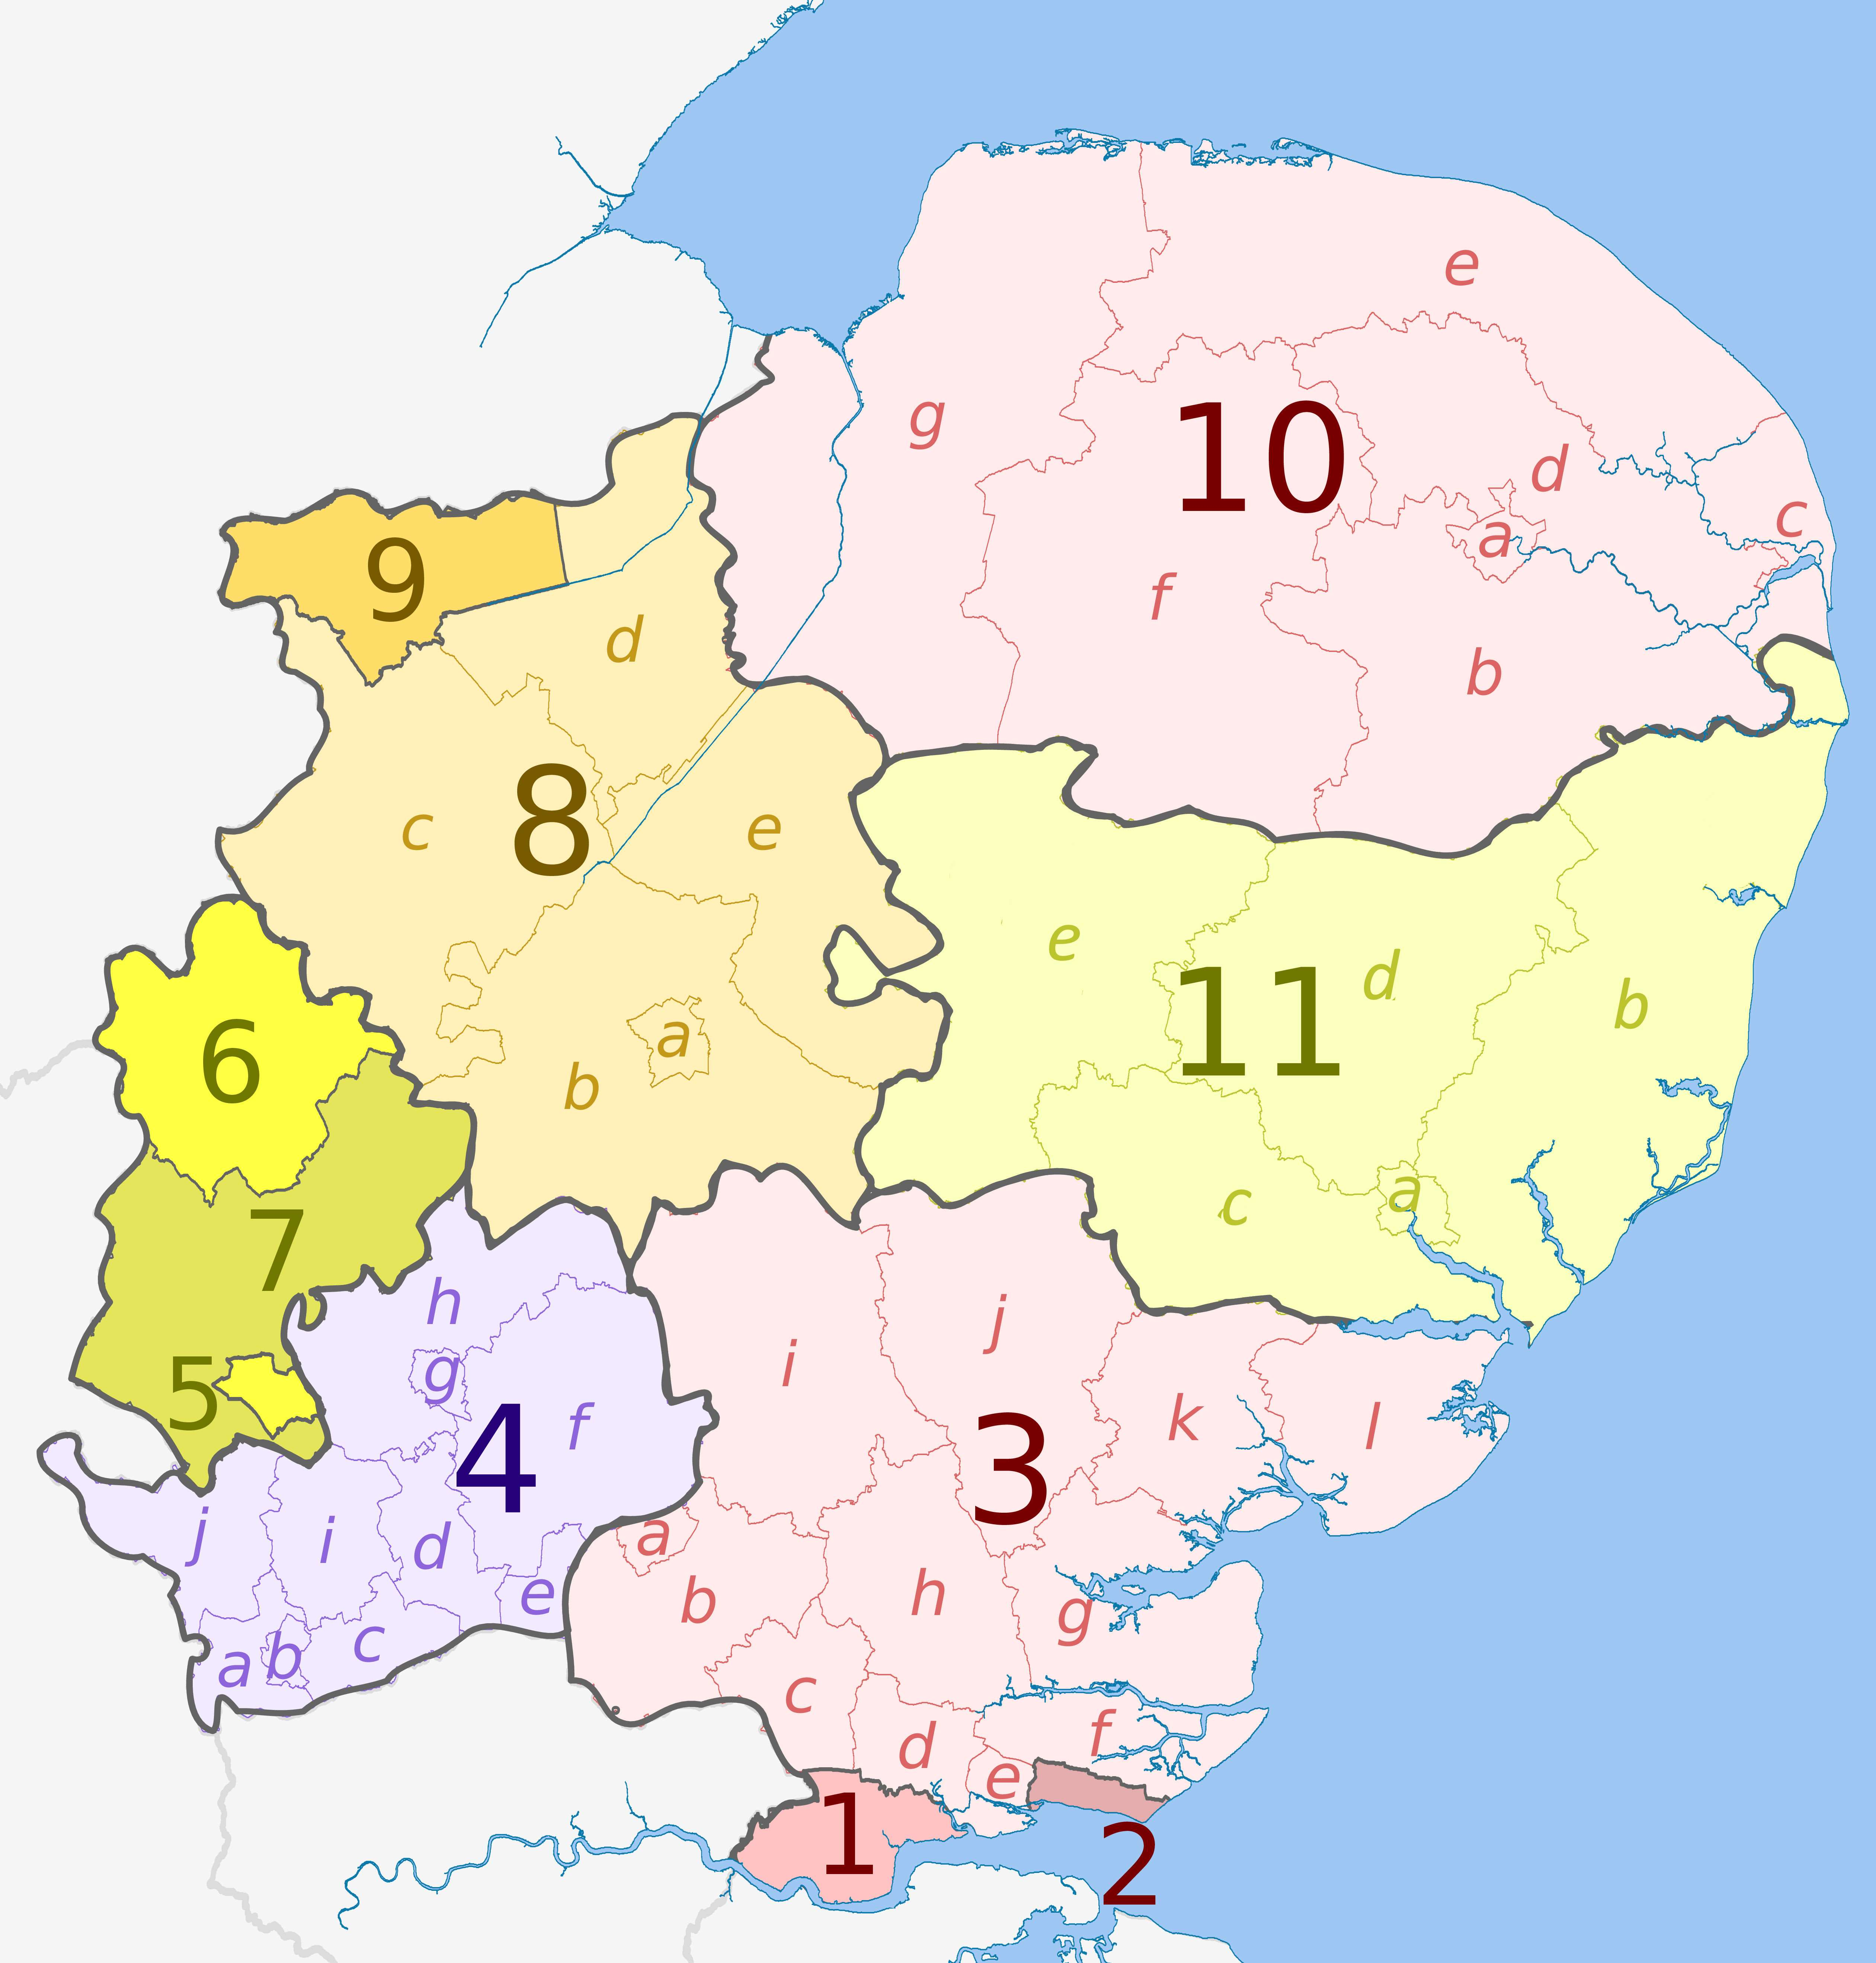 Map Of England And Counties.File East Of England Counties 2019 Map Jpg Wikimedia Commons